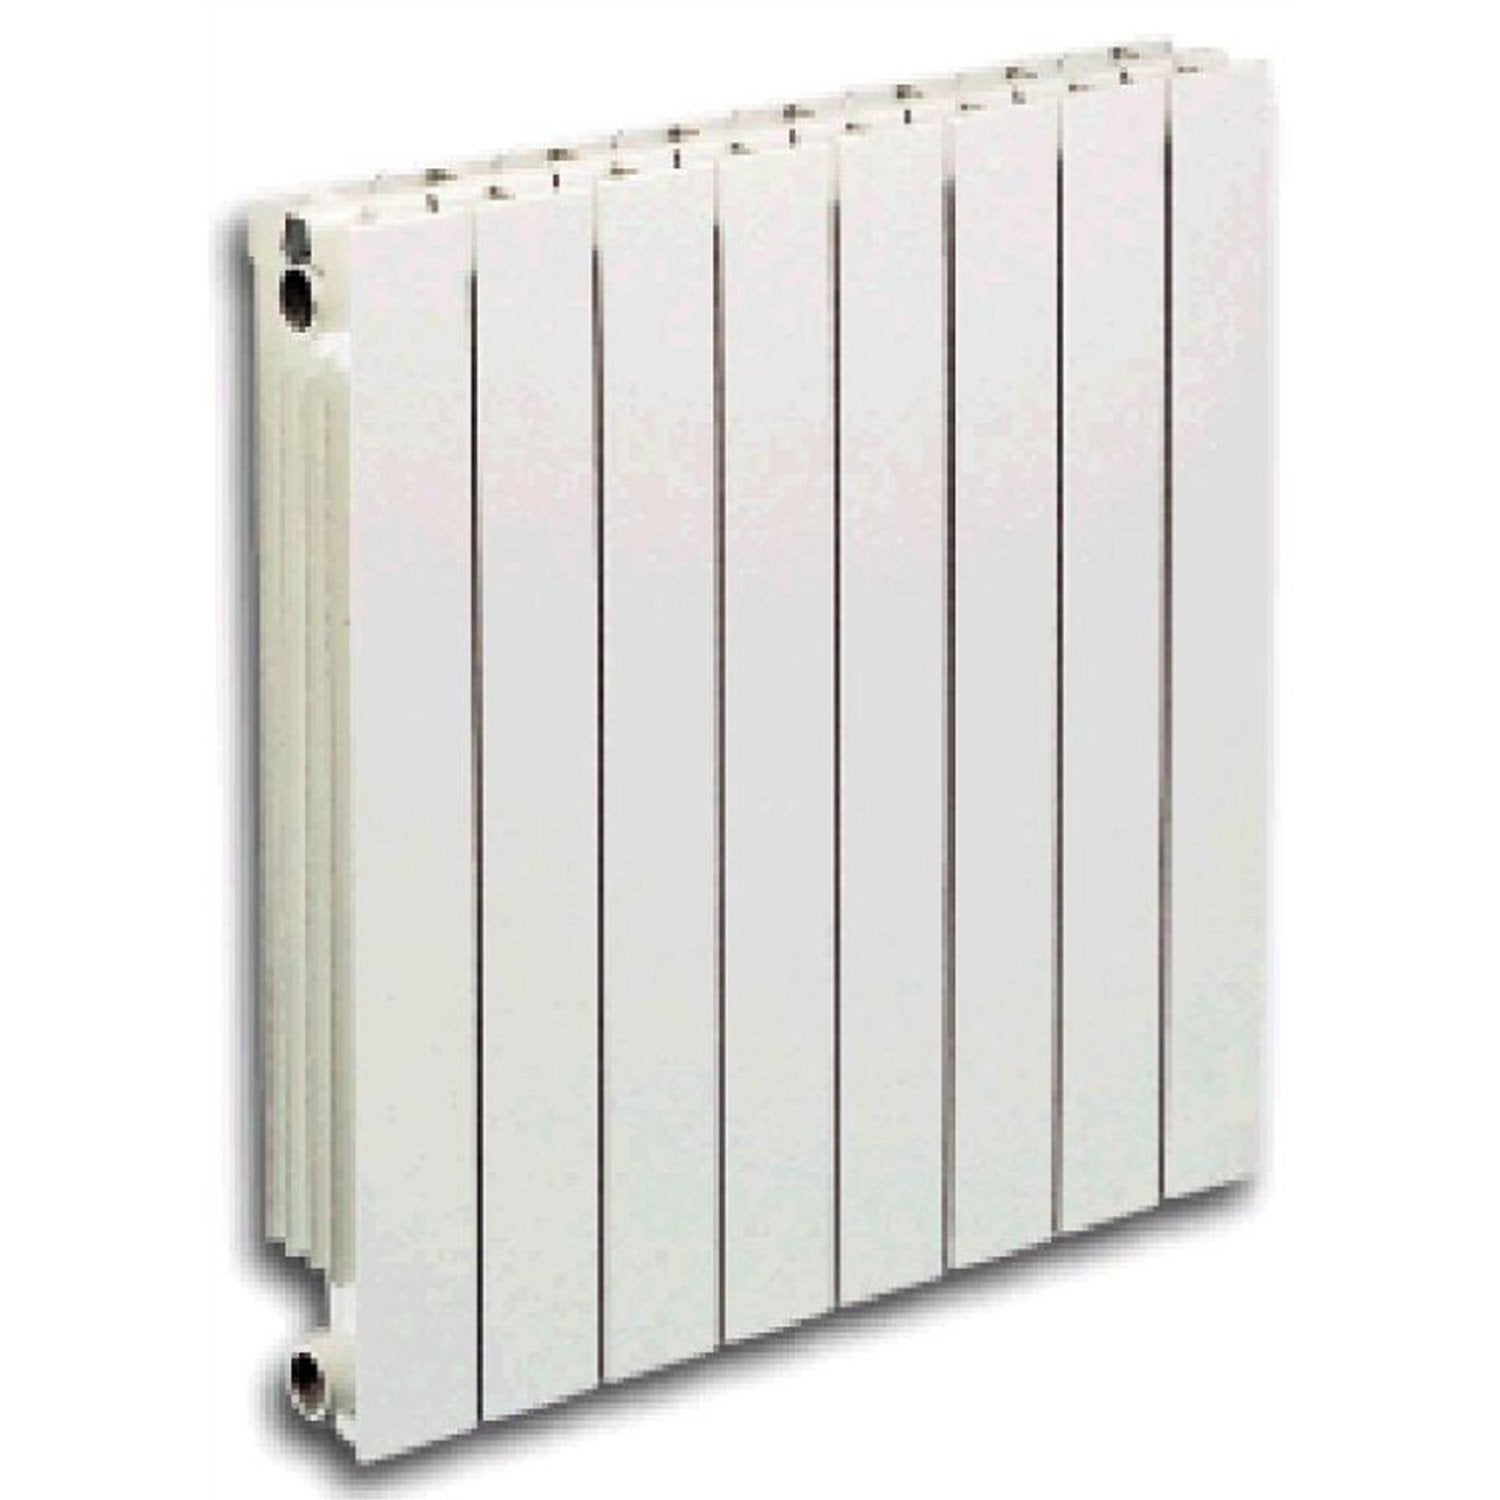 radiateur chauffage central vip 4 l ments blanc cm 572 w leroy merlin. Black Bedroom Furniture Sets. Home Design Ideas